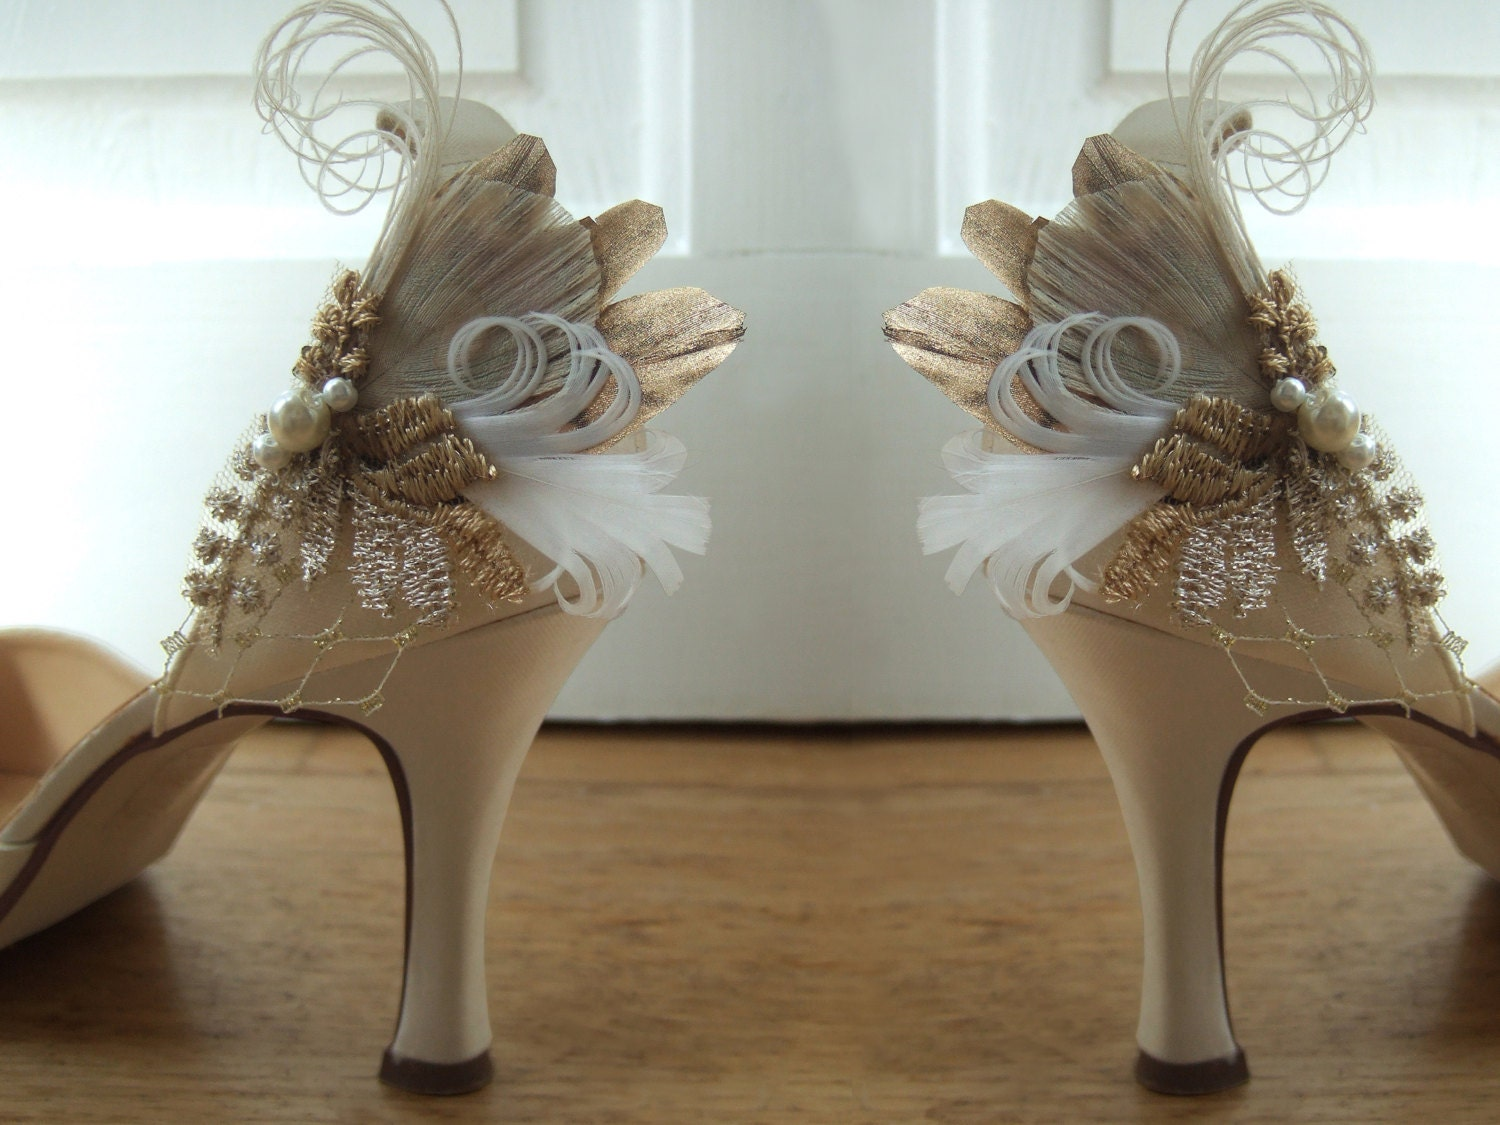 Bridal Peacock Pheasant Feathers Shoe Clips Cia with Vintage Lace (Pair) Bride Bridesmaid. Antique  Light Gold Shabby Chic Wedding Shoes